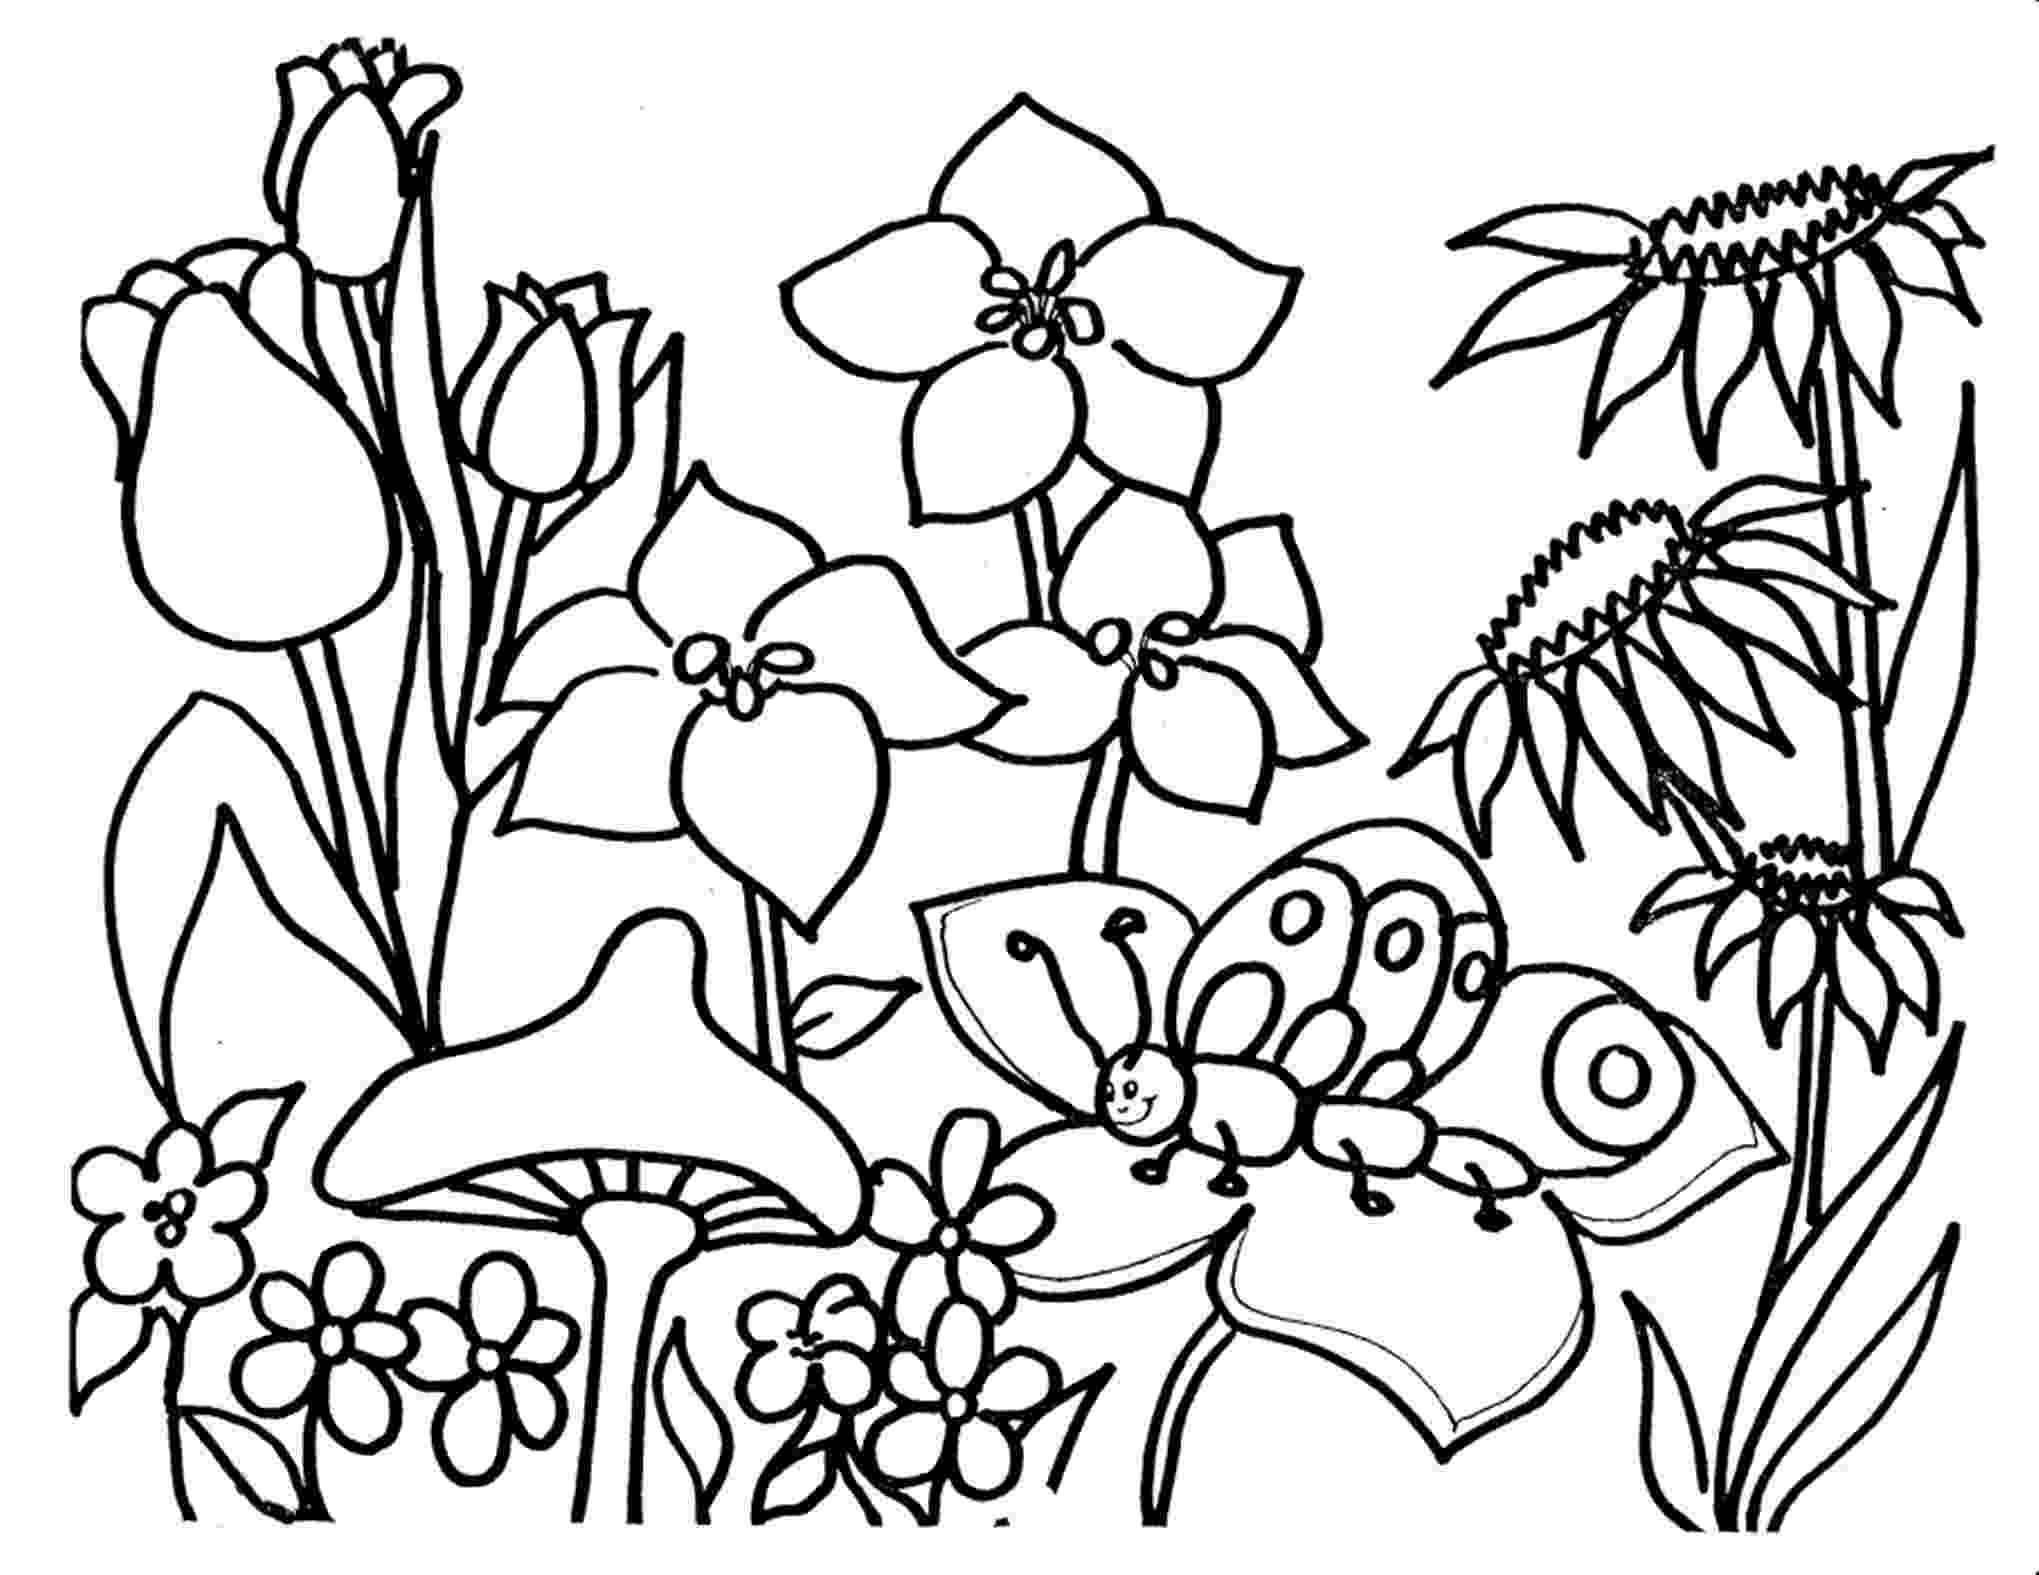 coloring flowers free printable flower coloring pages for kids best flowers coloring 1 1